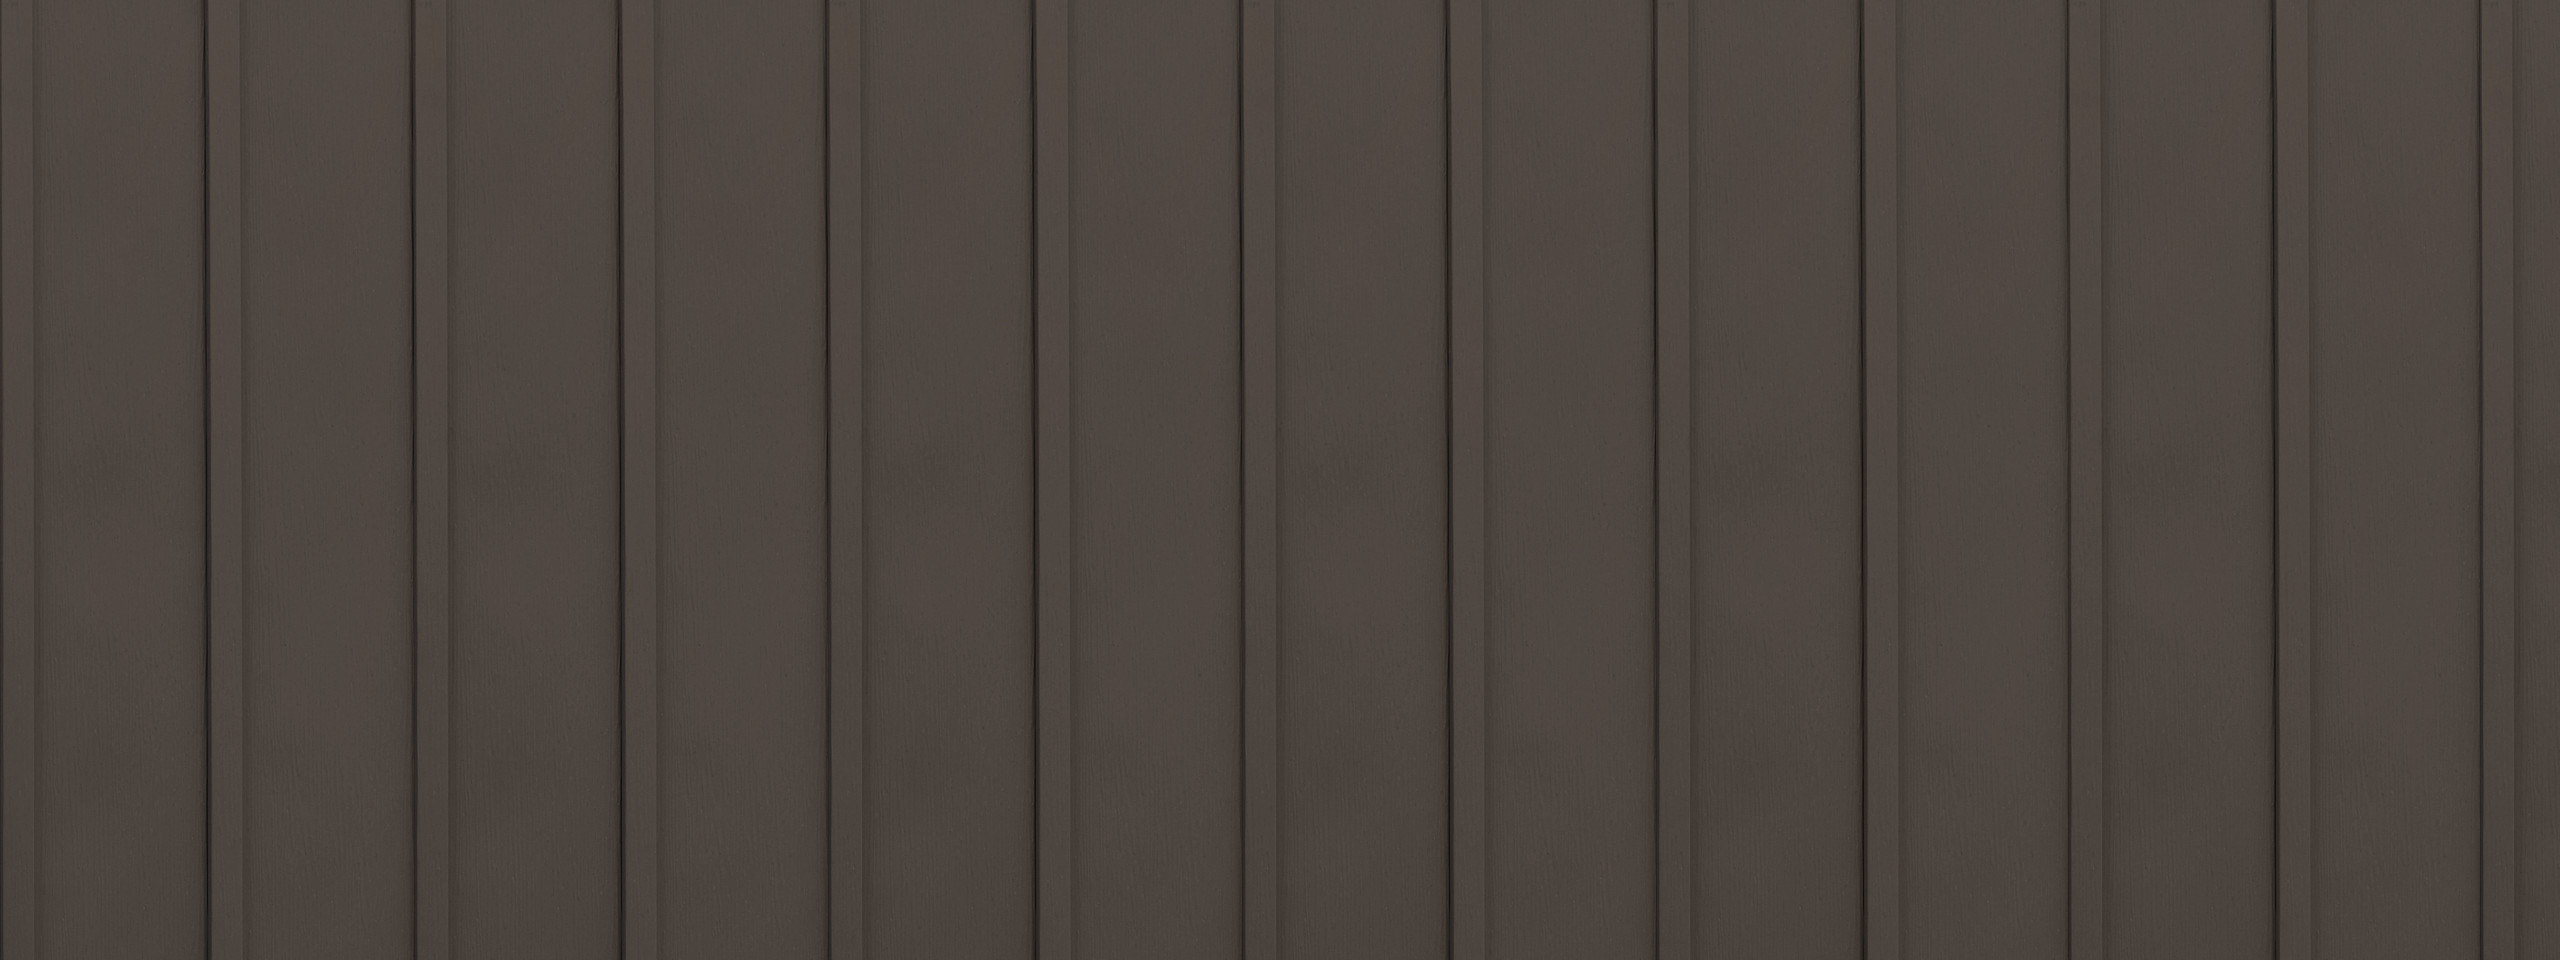 Prism onyx vertical steel siding